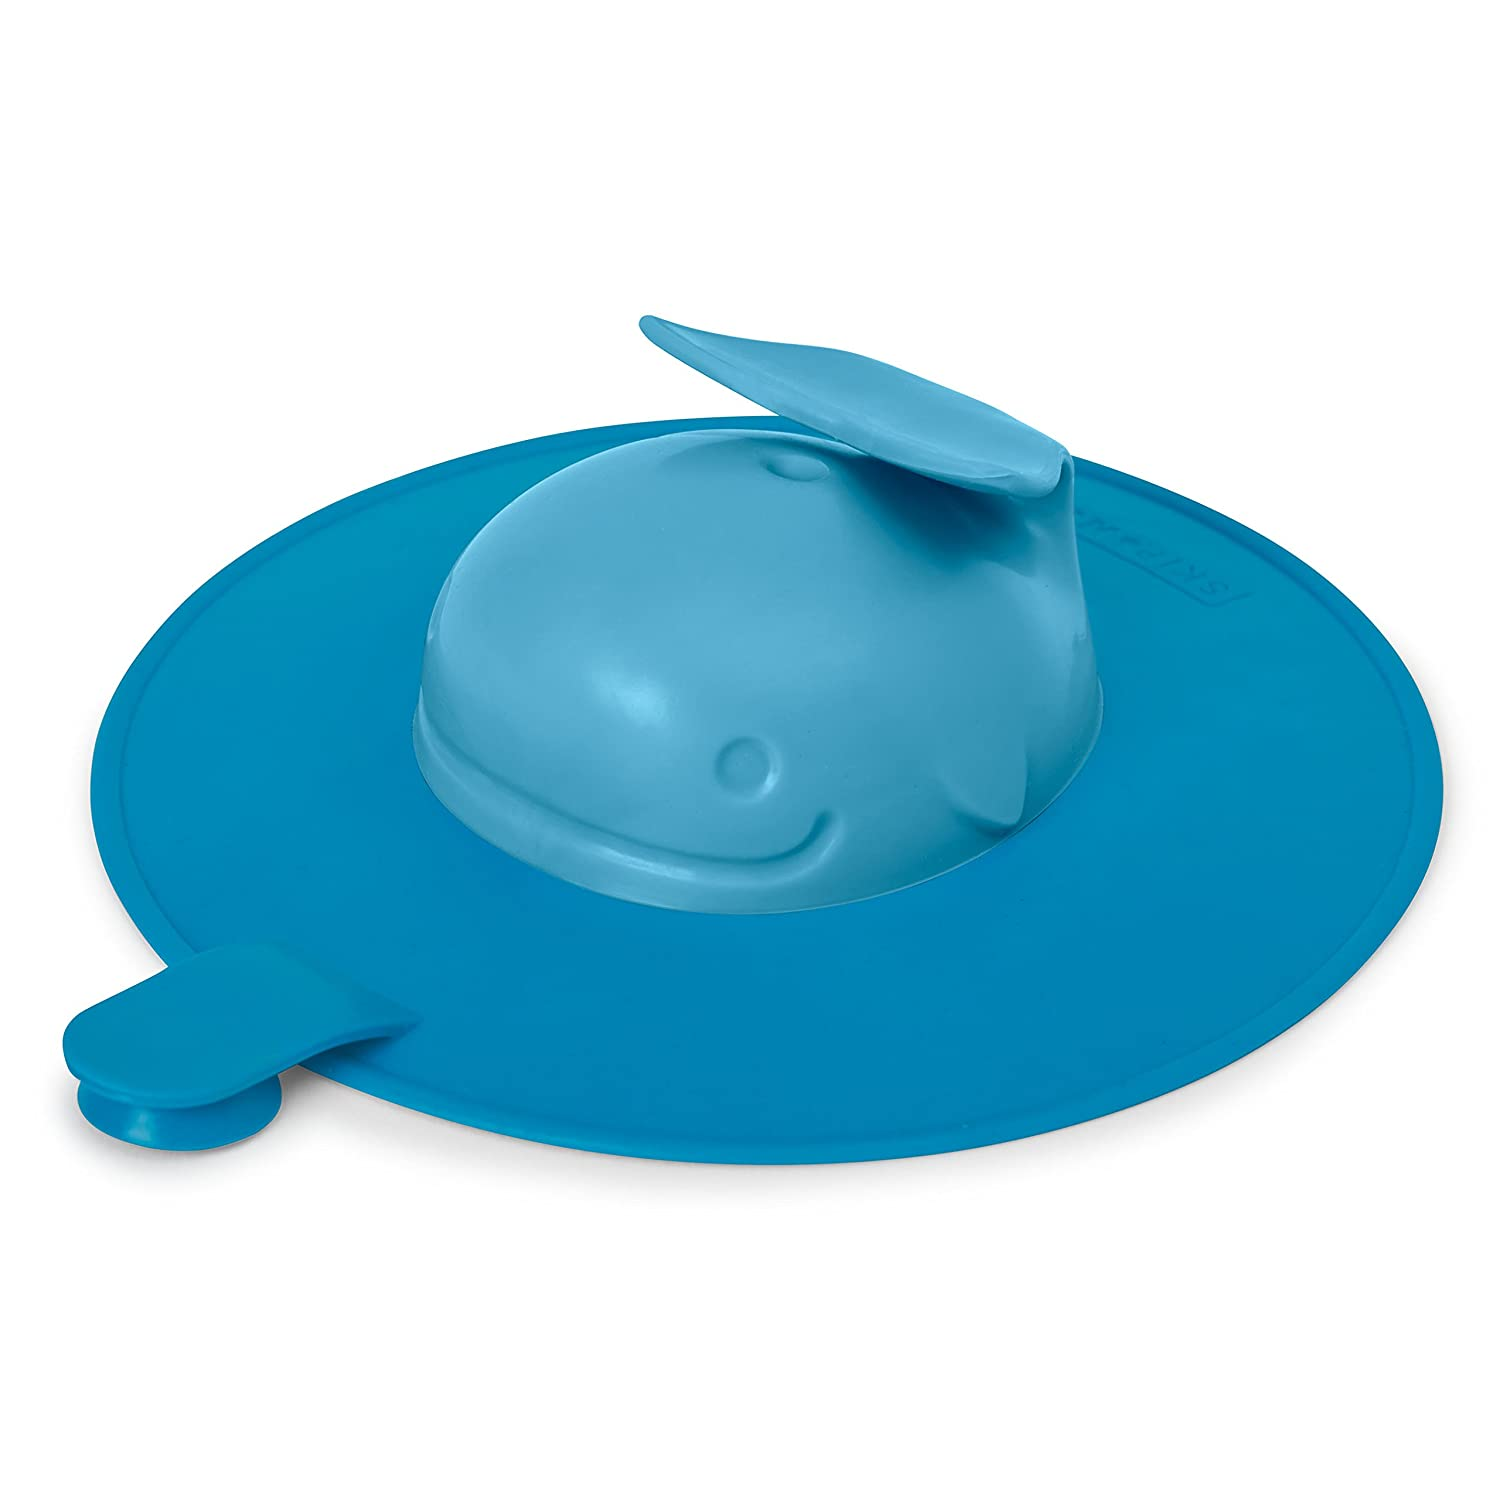 Skip Hop Moby Baby Bath Tub Stopper, Blue 235460